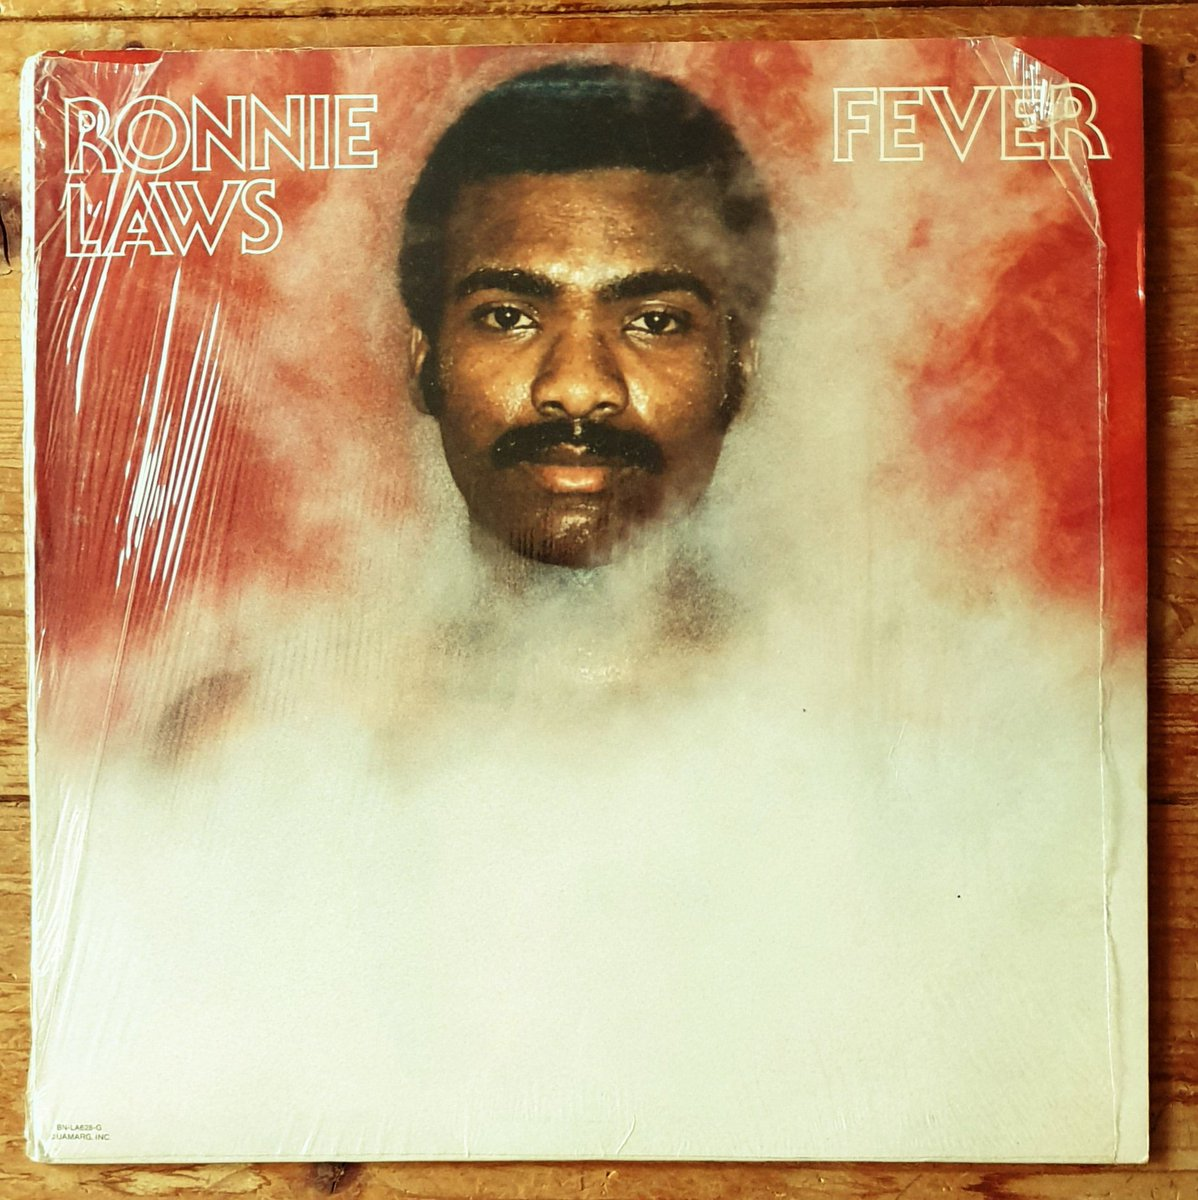 #RonnieLaws – Fever Label: #BlueNoteRecords – BN-LA628-G, At Home Productions – BN-LA628-G Format: #Vinyl #LP #Album  Country: US Released: 1976 Genre: Jazz, Funk / Soul Style: #SmoothJazz #JazzFunk #Funk  @RonnieLawsmusic